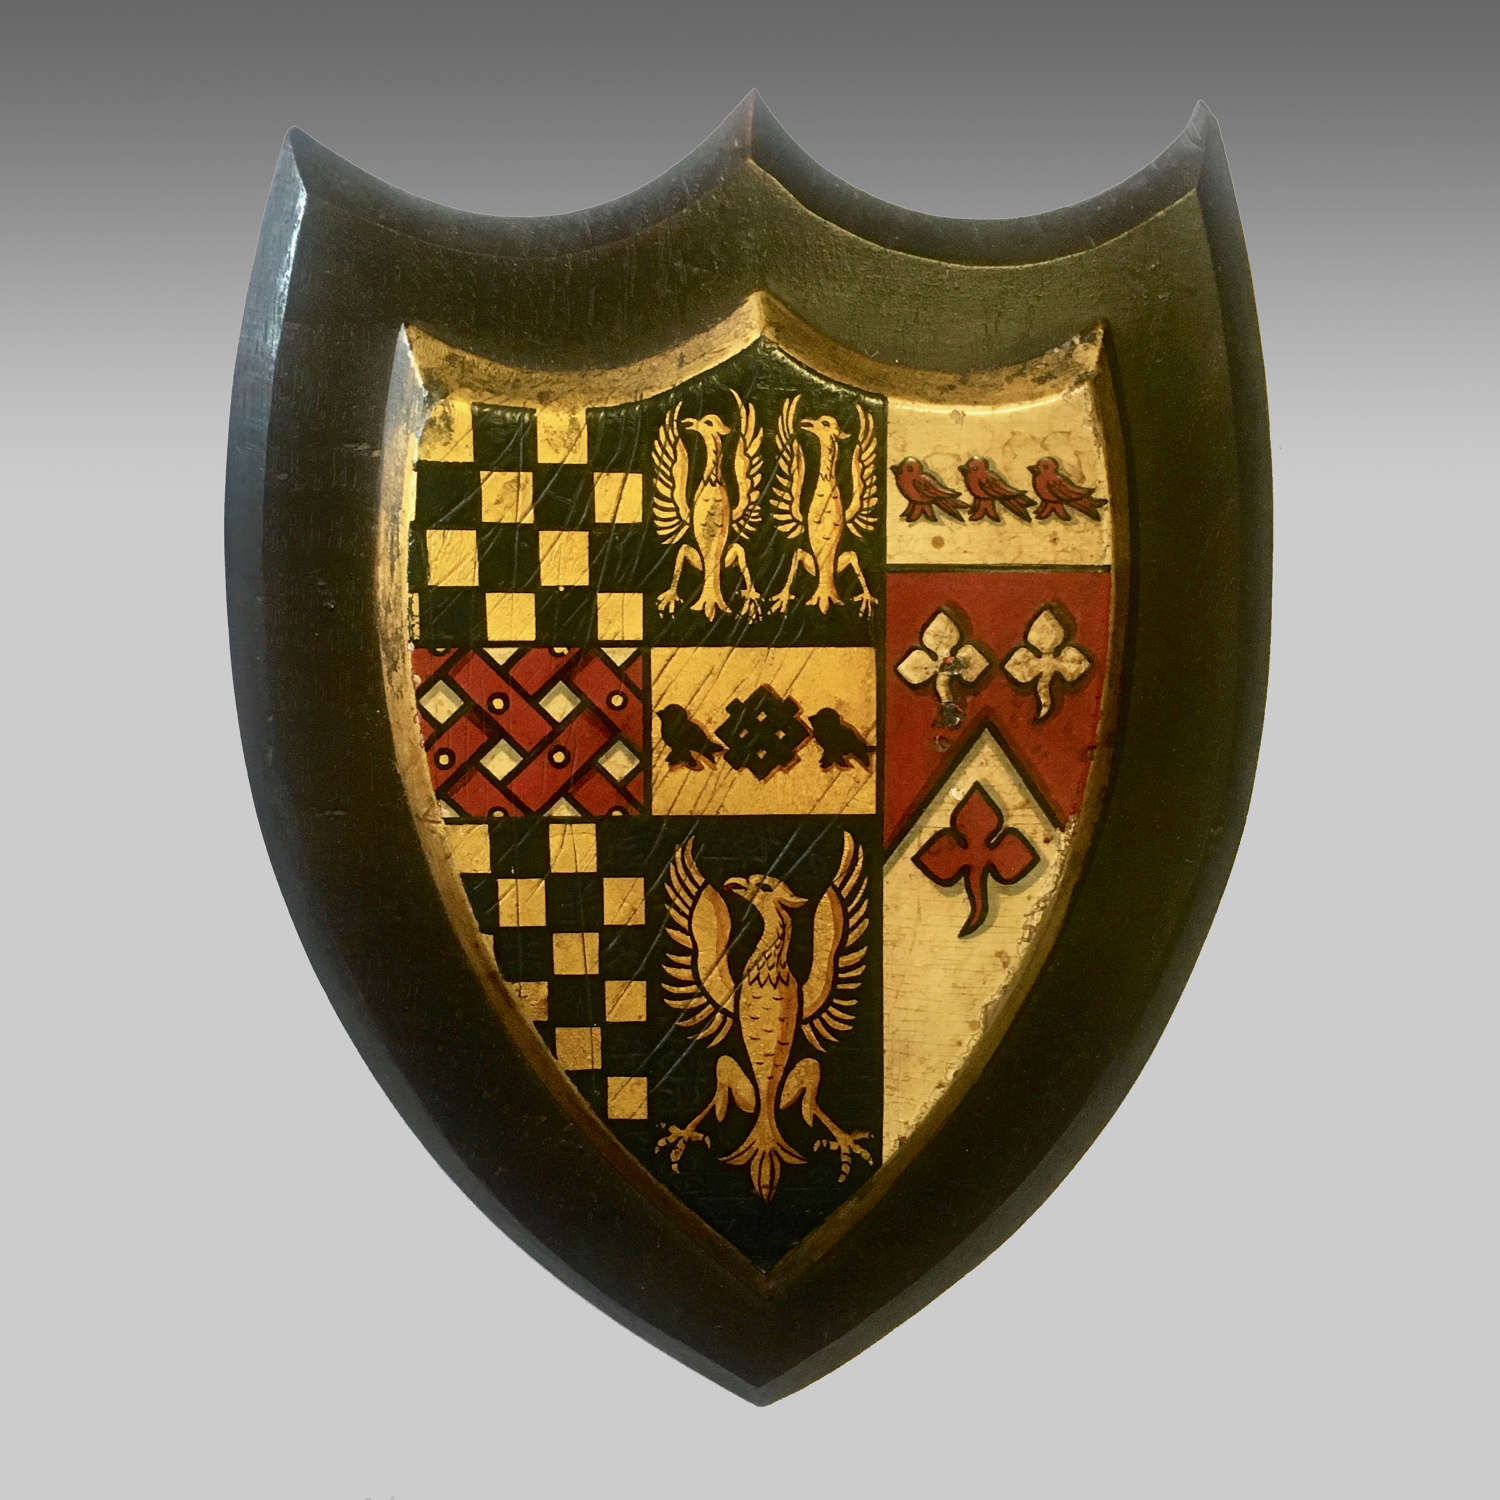 Armorial Shield, the crest of Bedford School